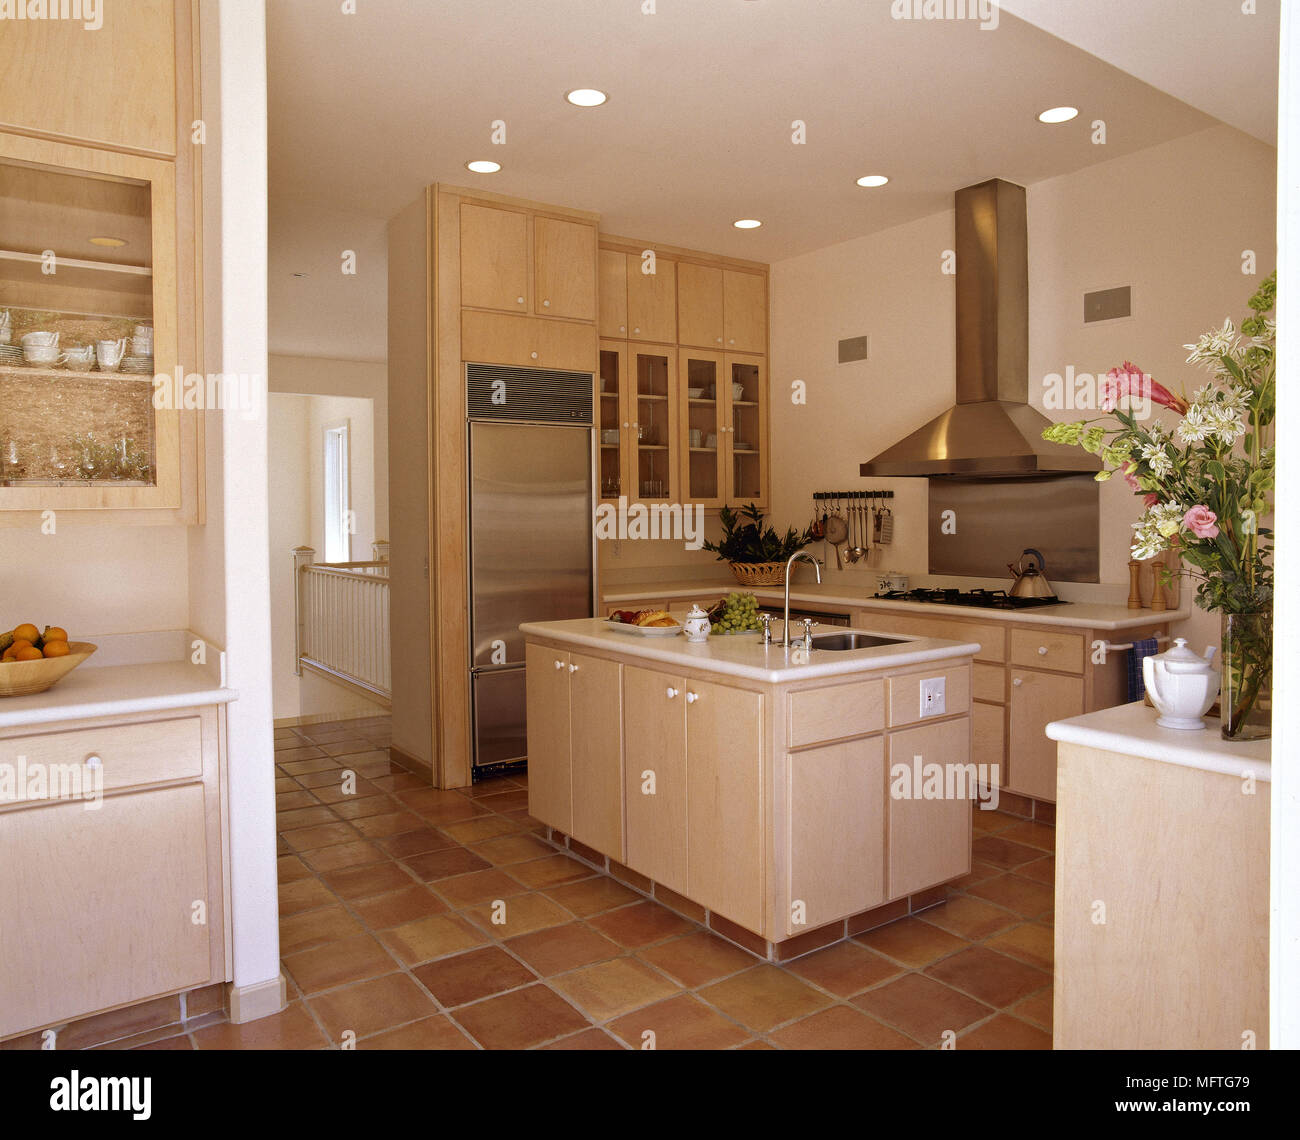 Modern Kitchen Central Island Unit Wood Units Tiled Floor Interiors